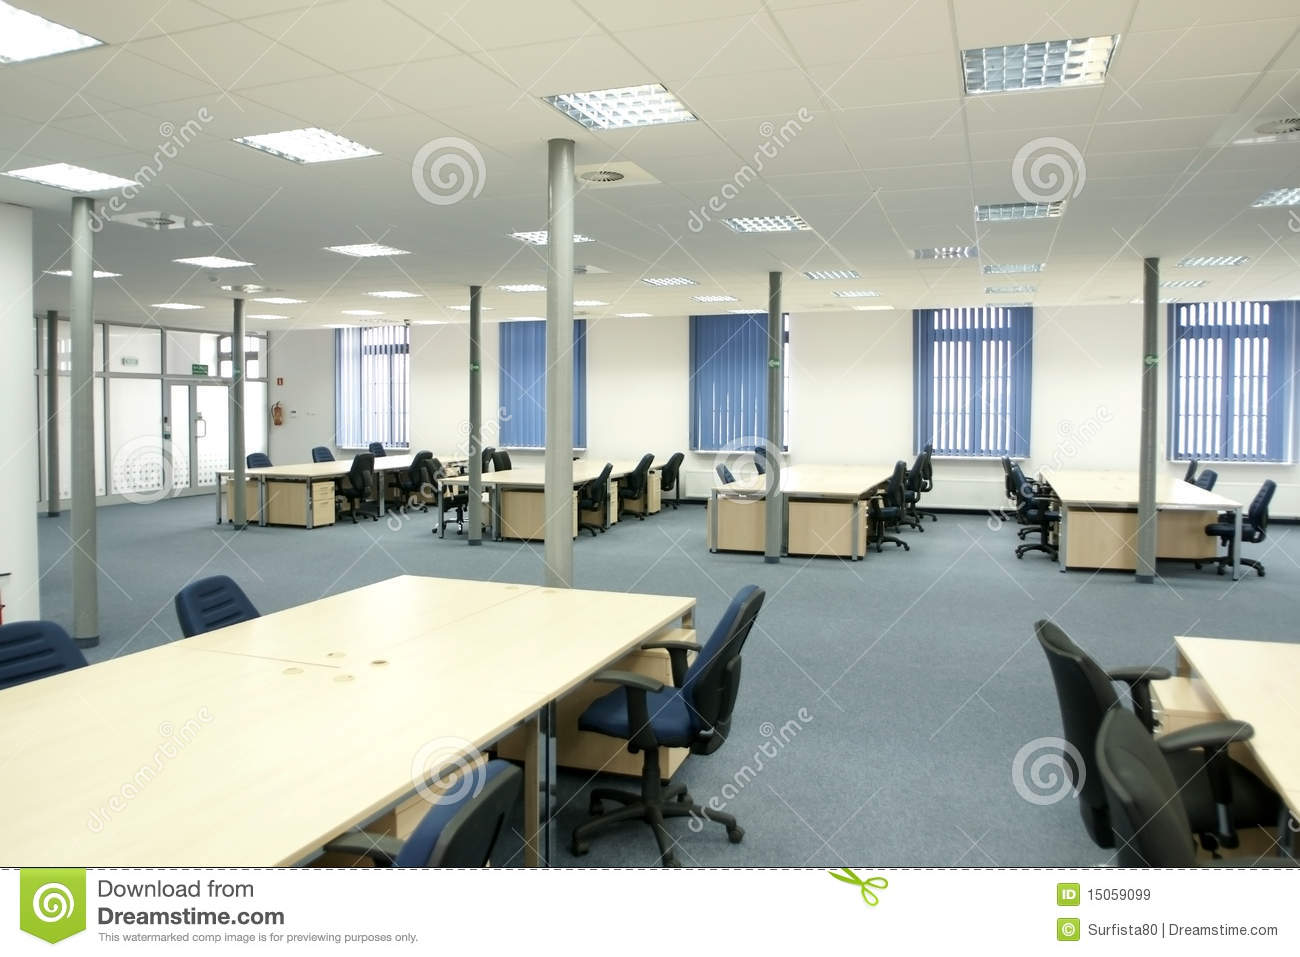 Office interior modern empty open space office royalty for Interior design of office space